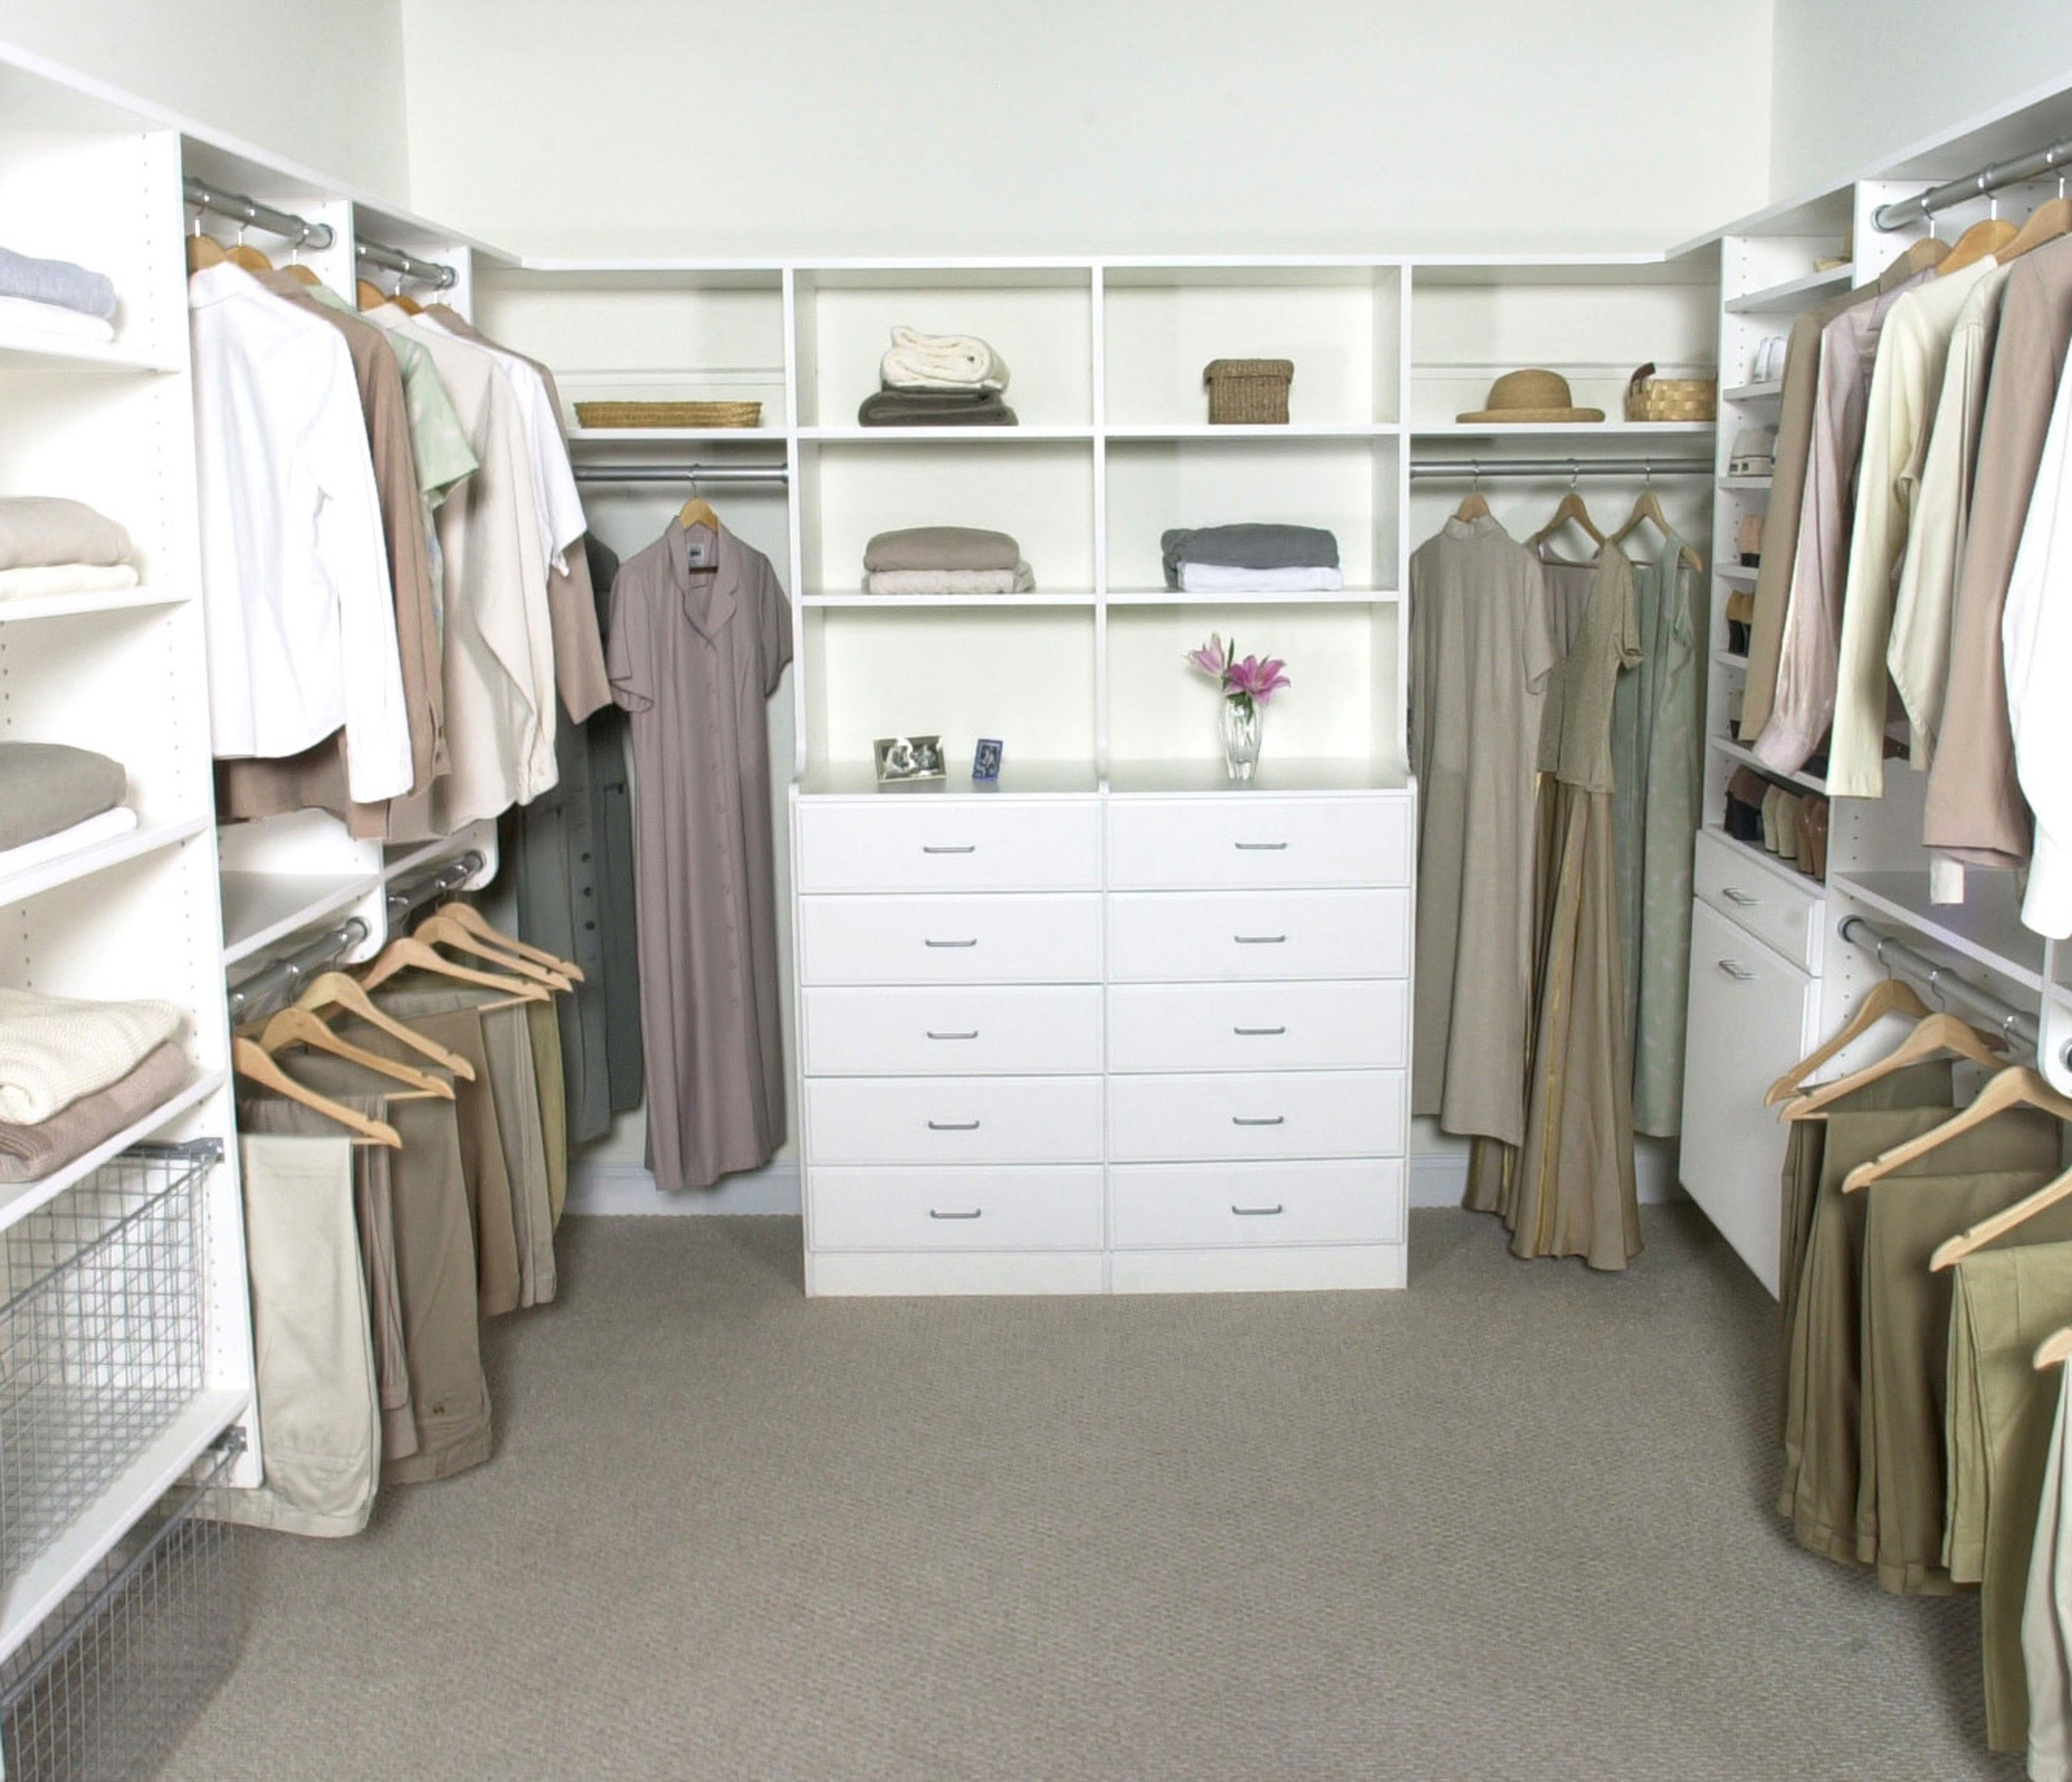 Simple Design Master Closet Ideas Comes With Single Hanging Bars